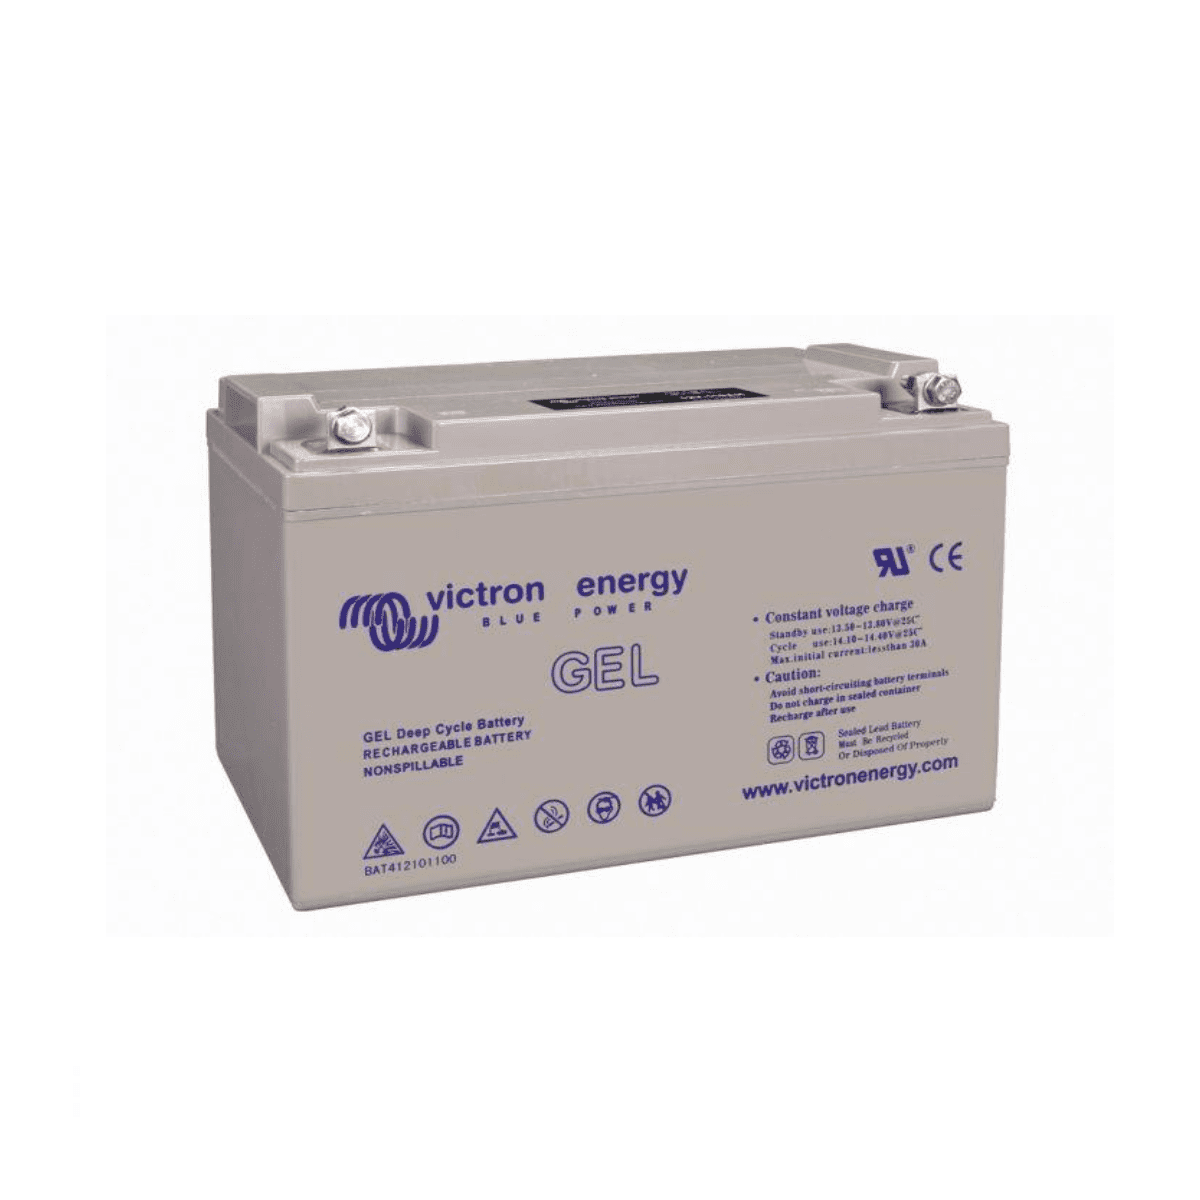 Victron 12V 265Ah GEL Deep Cycle Battery on Sale